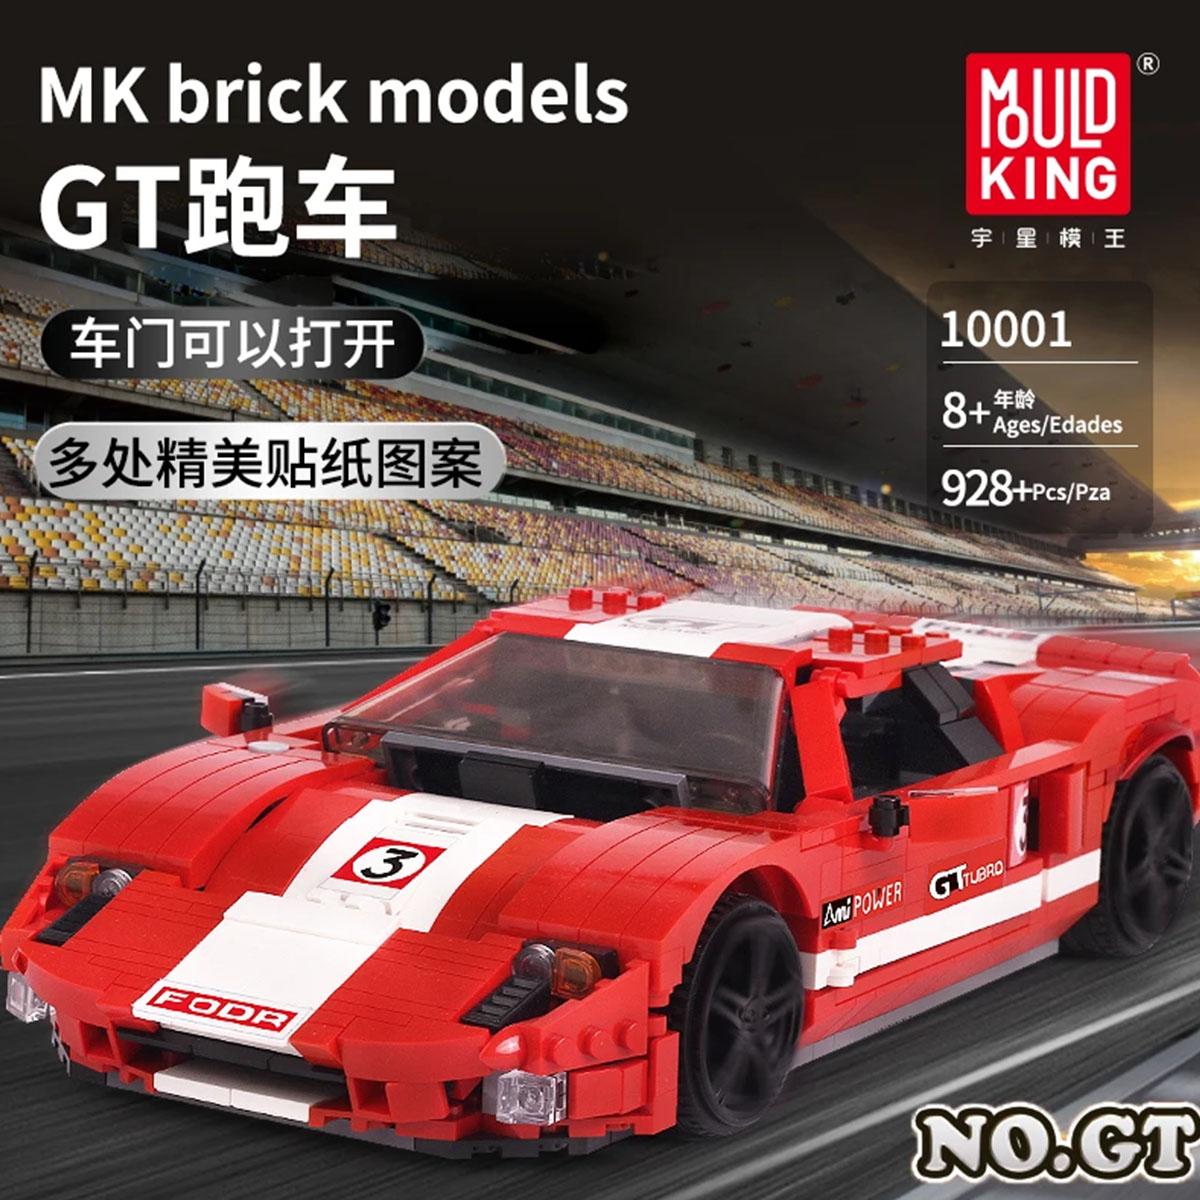 Technic MOULDKING 10001 Red Ford GT